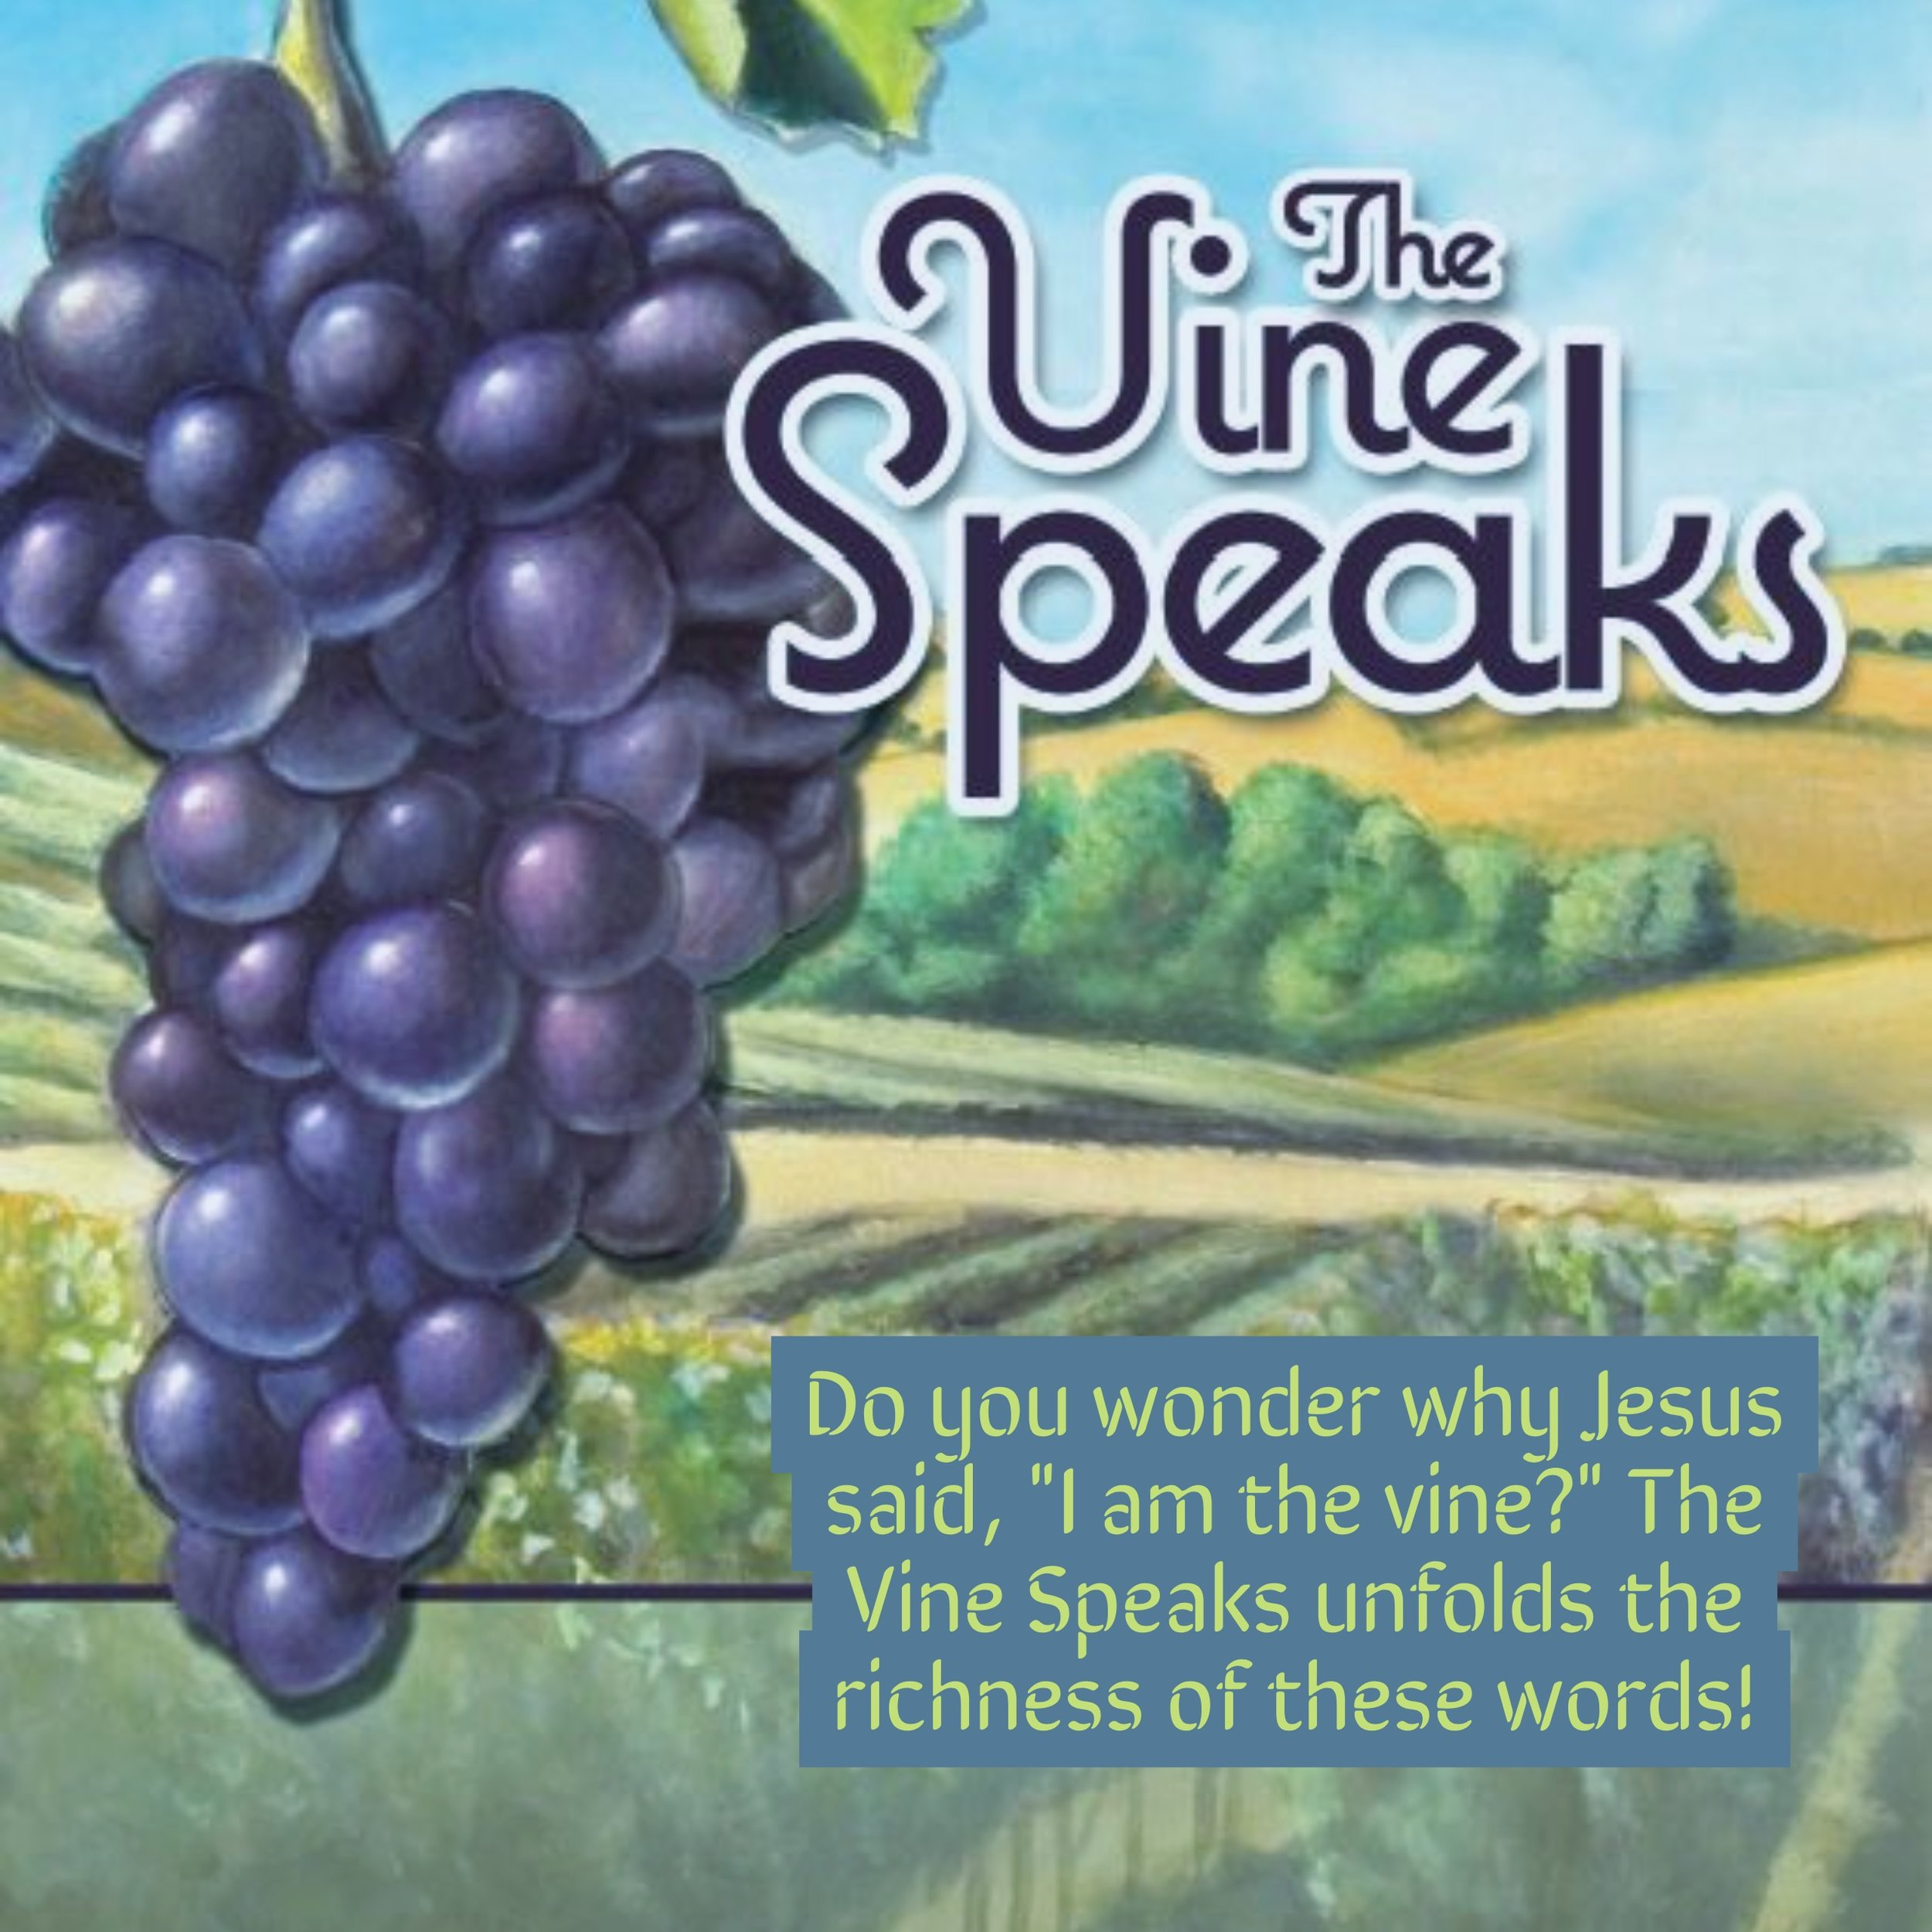 Cindy's understanding of Jesus' words after 20 years of working in her vineyards.